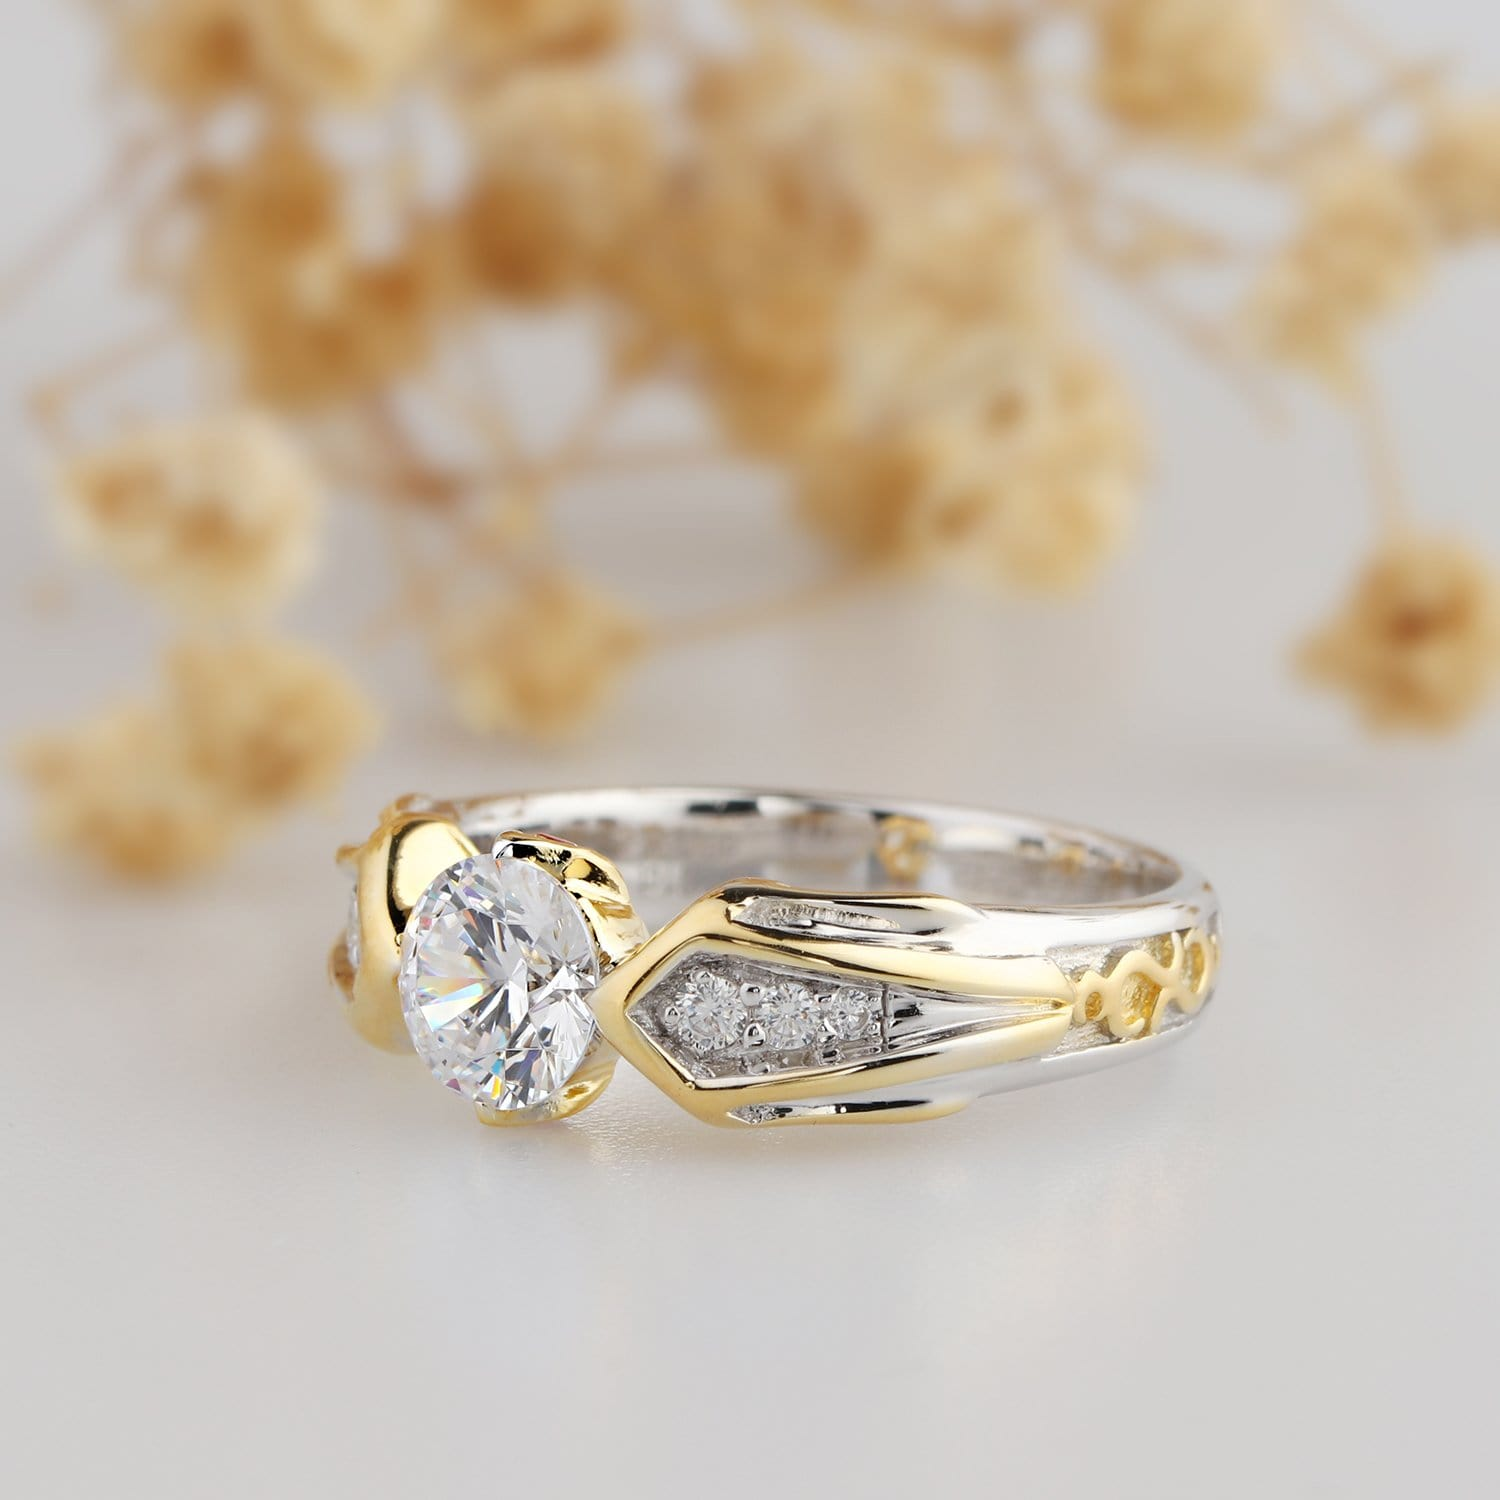 ring man engagement of diamonds gallery lovely inspirational photo rings diamond made